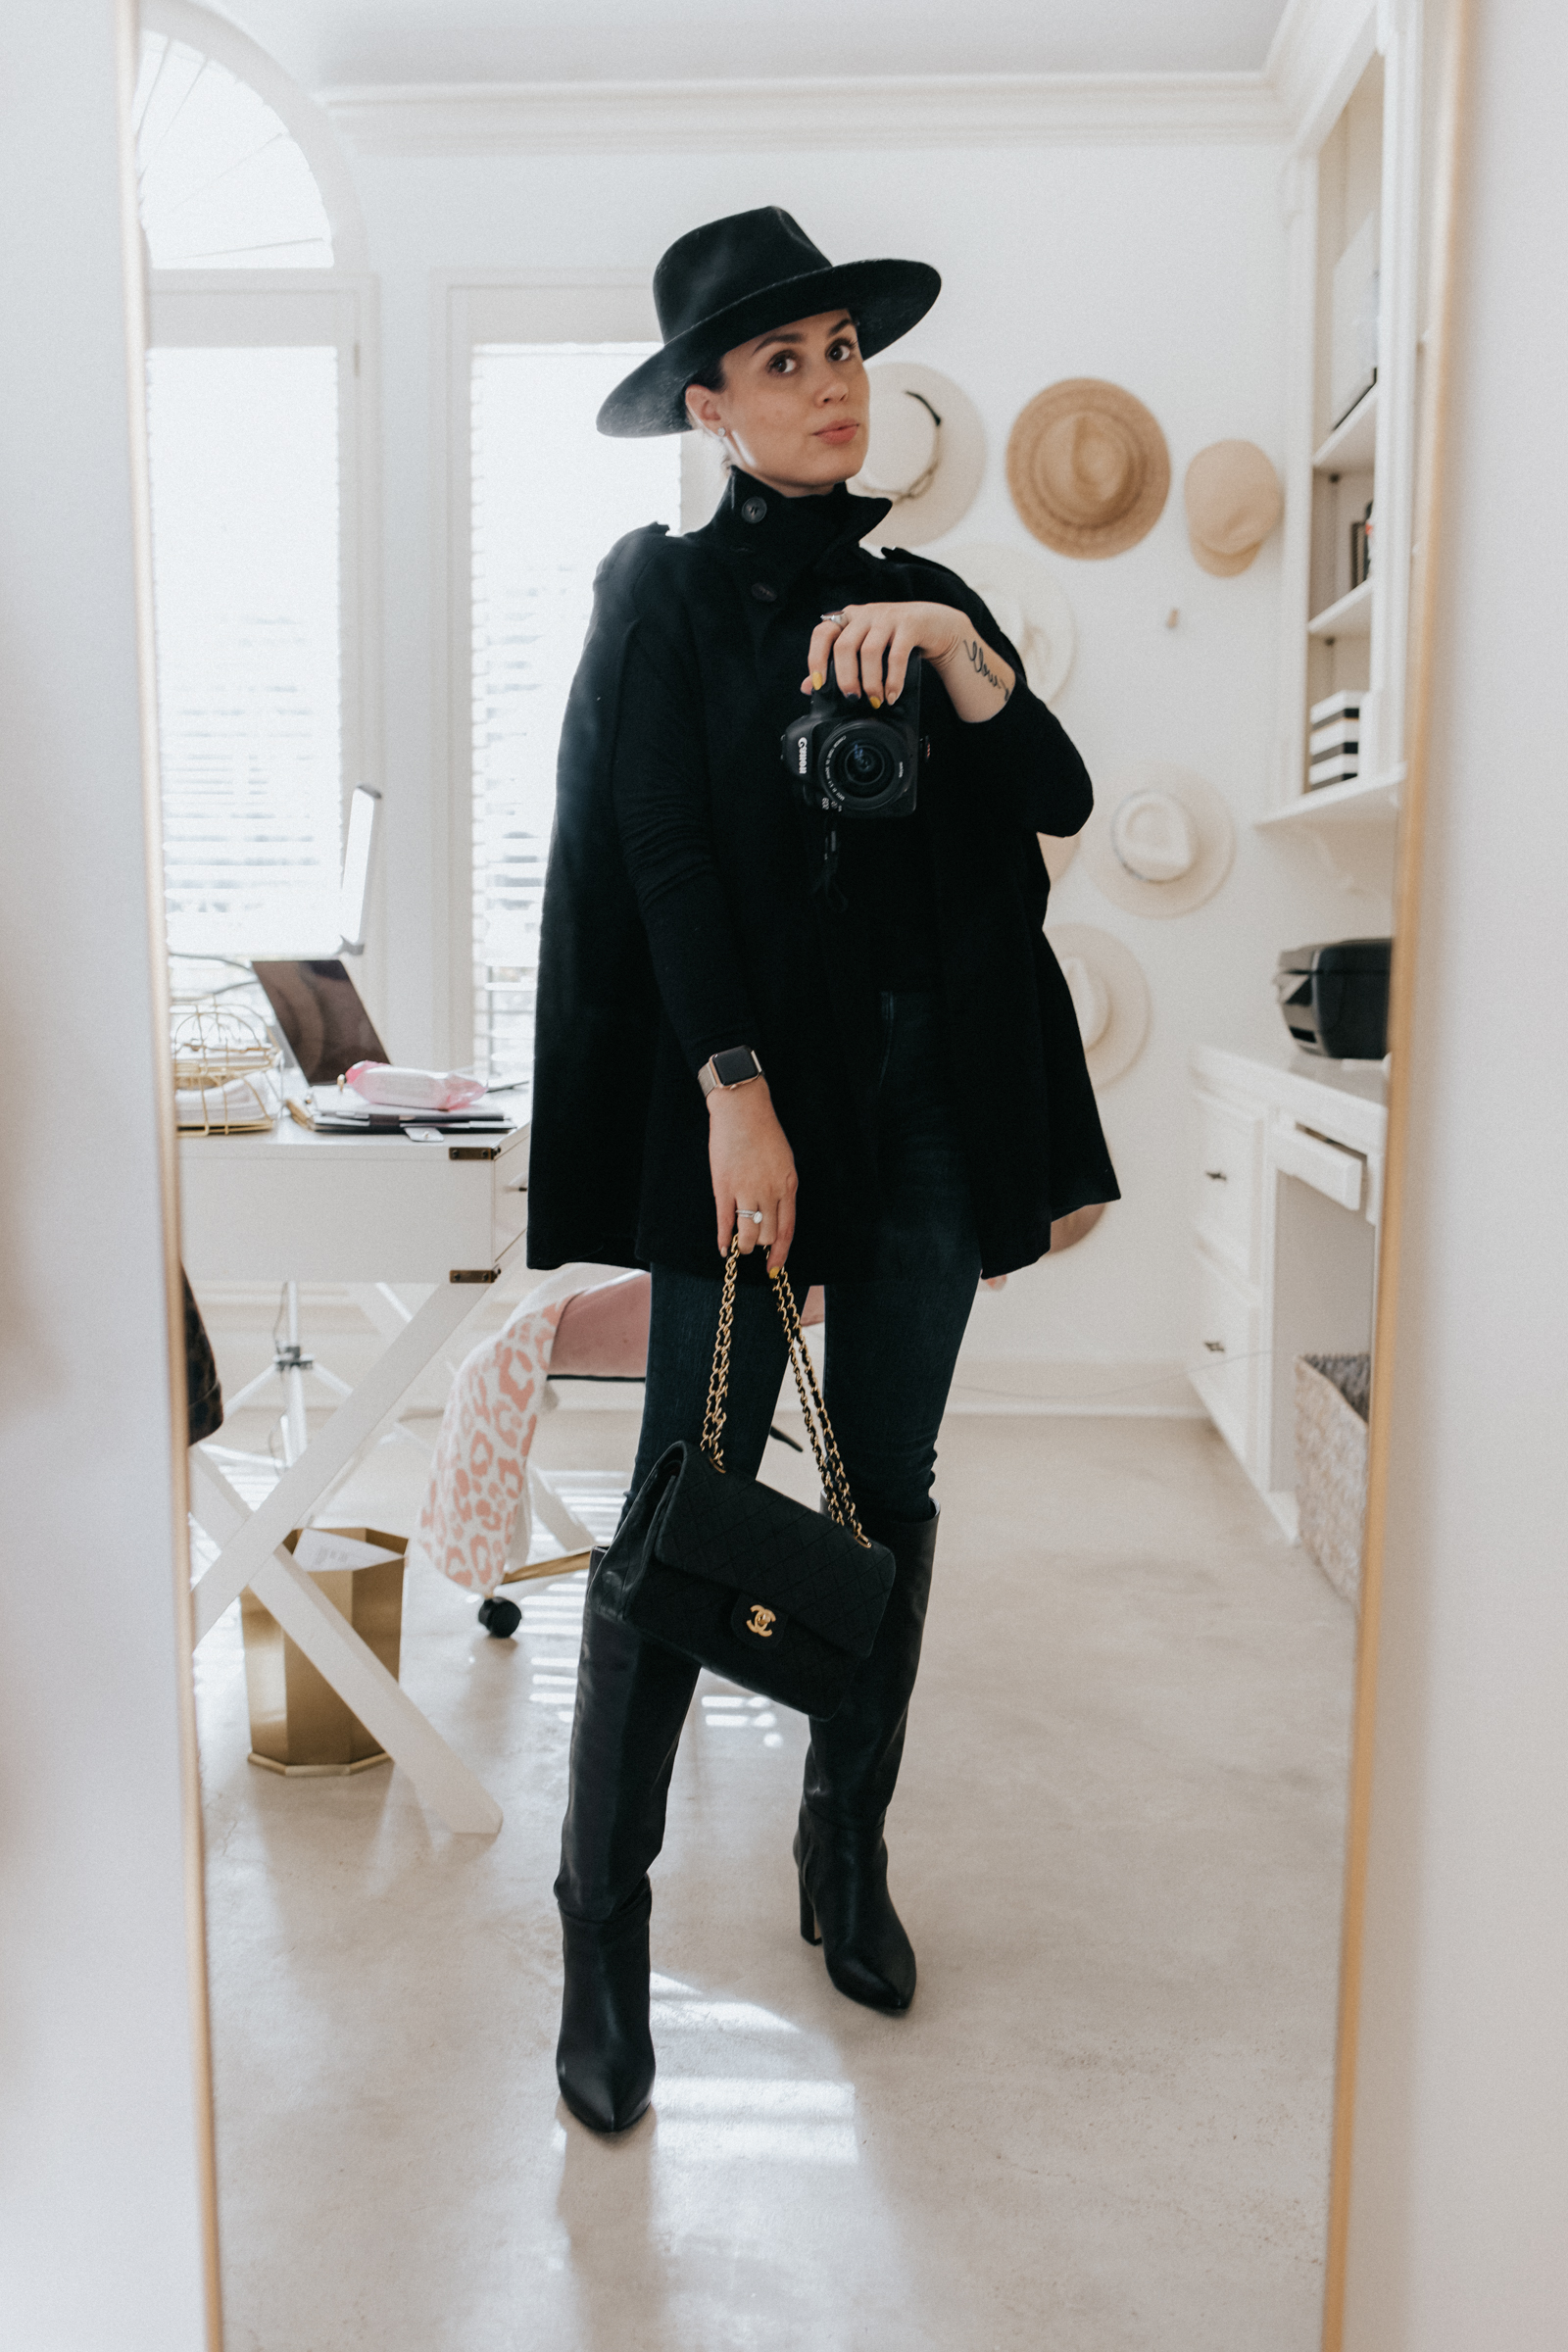 elly brown styles a winter cape coat from zara with knee high boots and a turtle neck